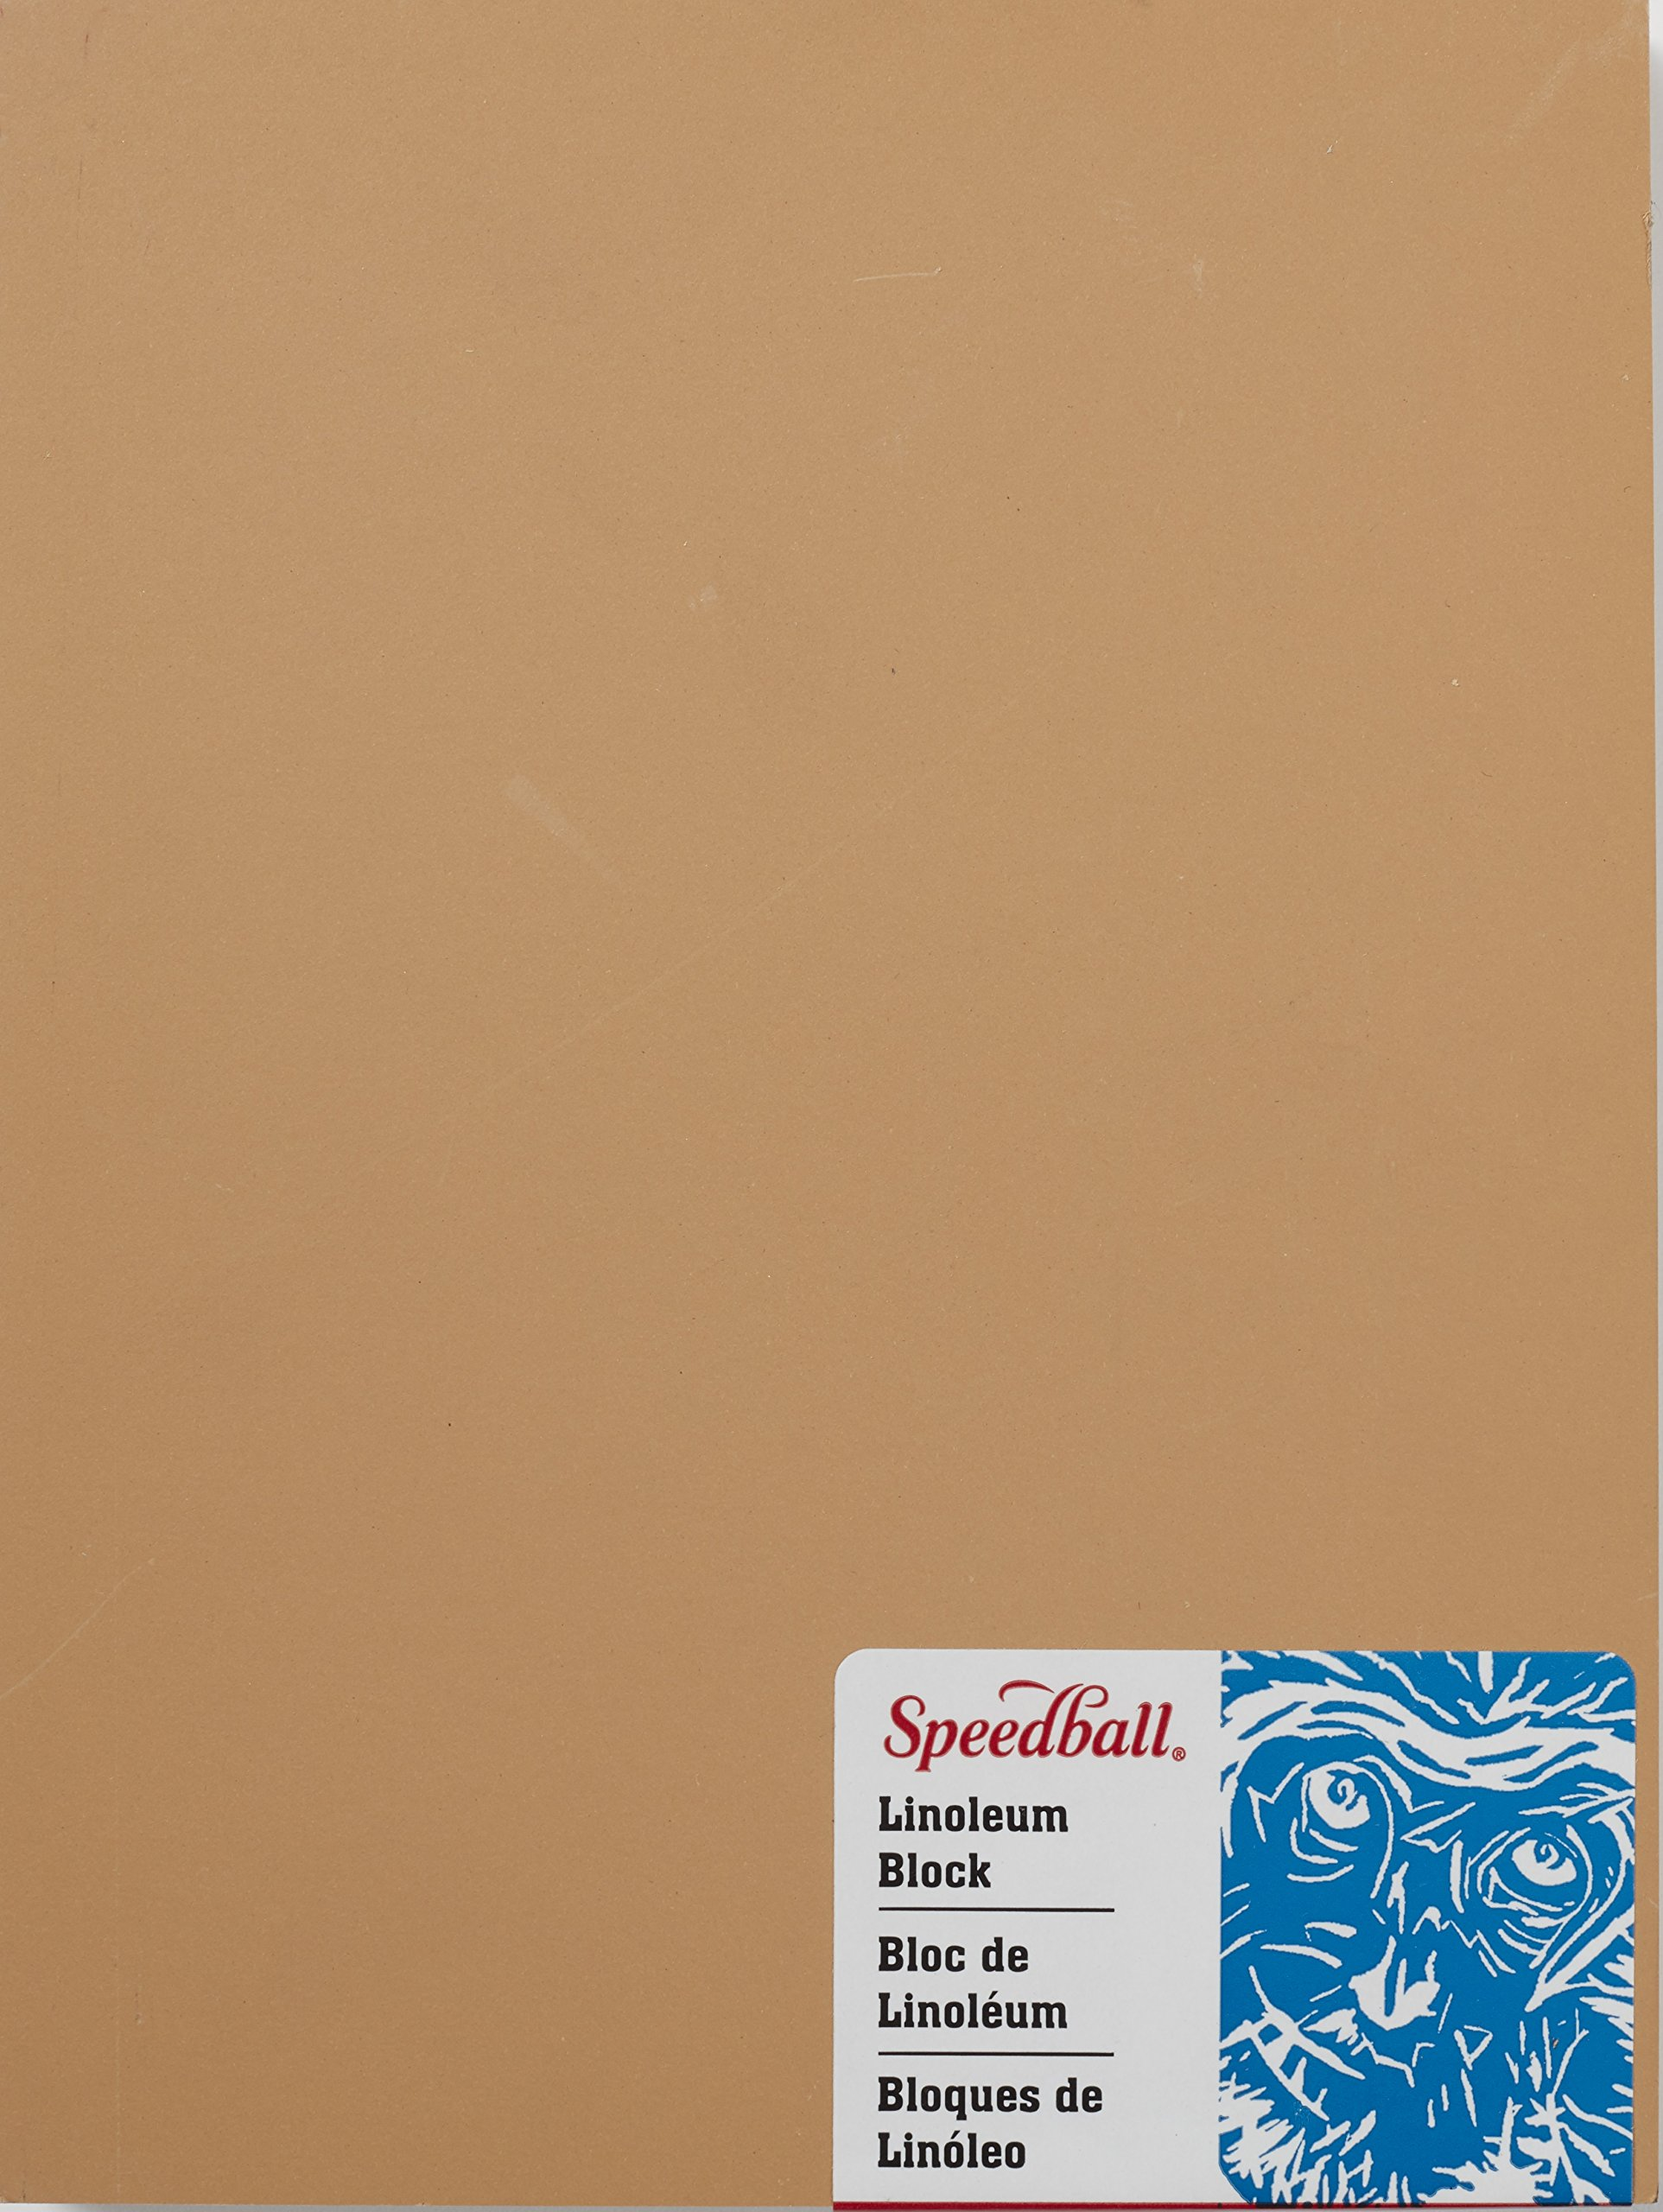 Speedball 4311 Premium Mounted Linoleum Block - Fine, Flat Surface for Easy Carving, Smoky Tan, 6 x 8 Inches by Speedball